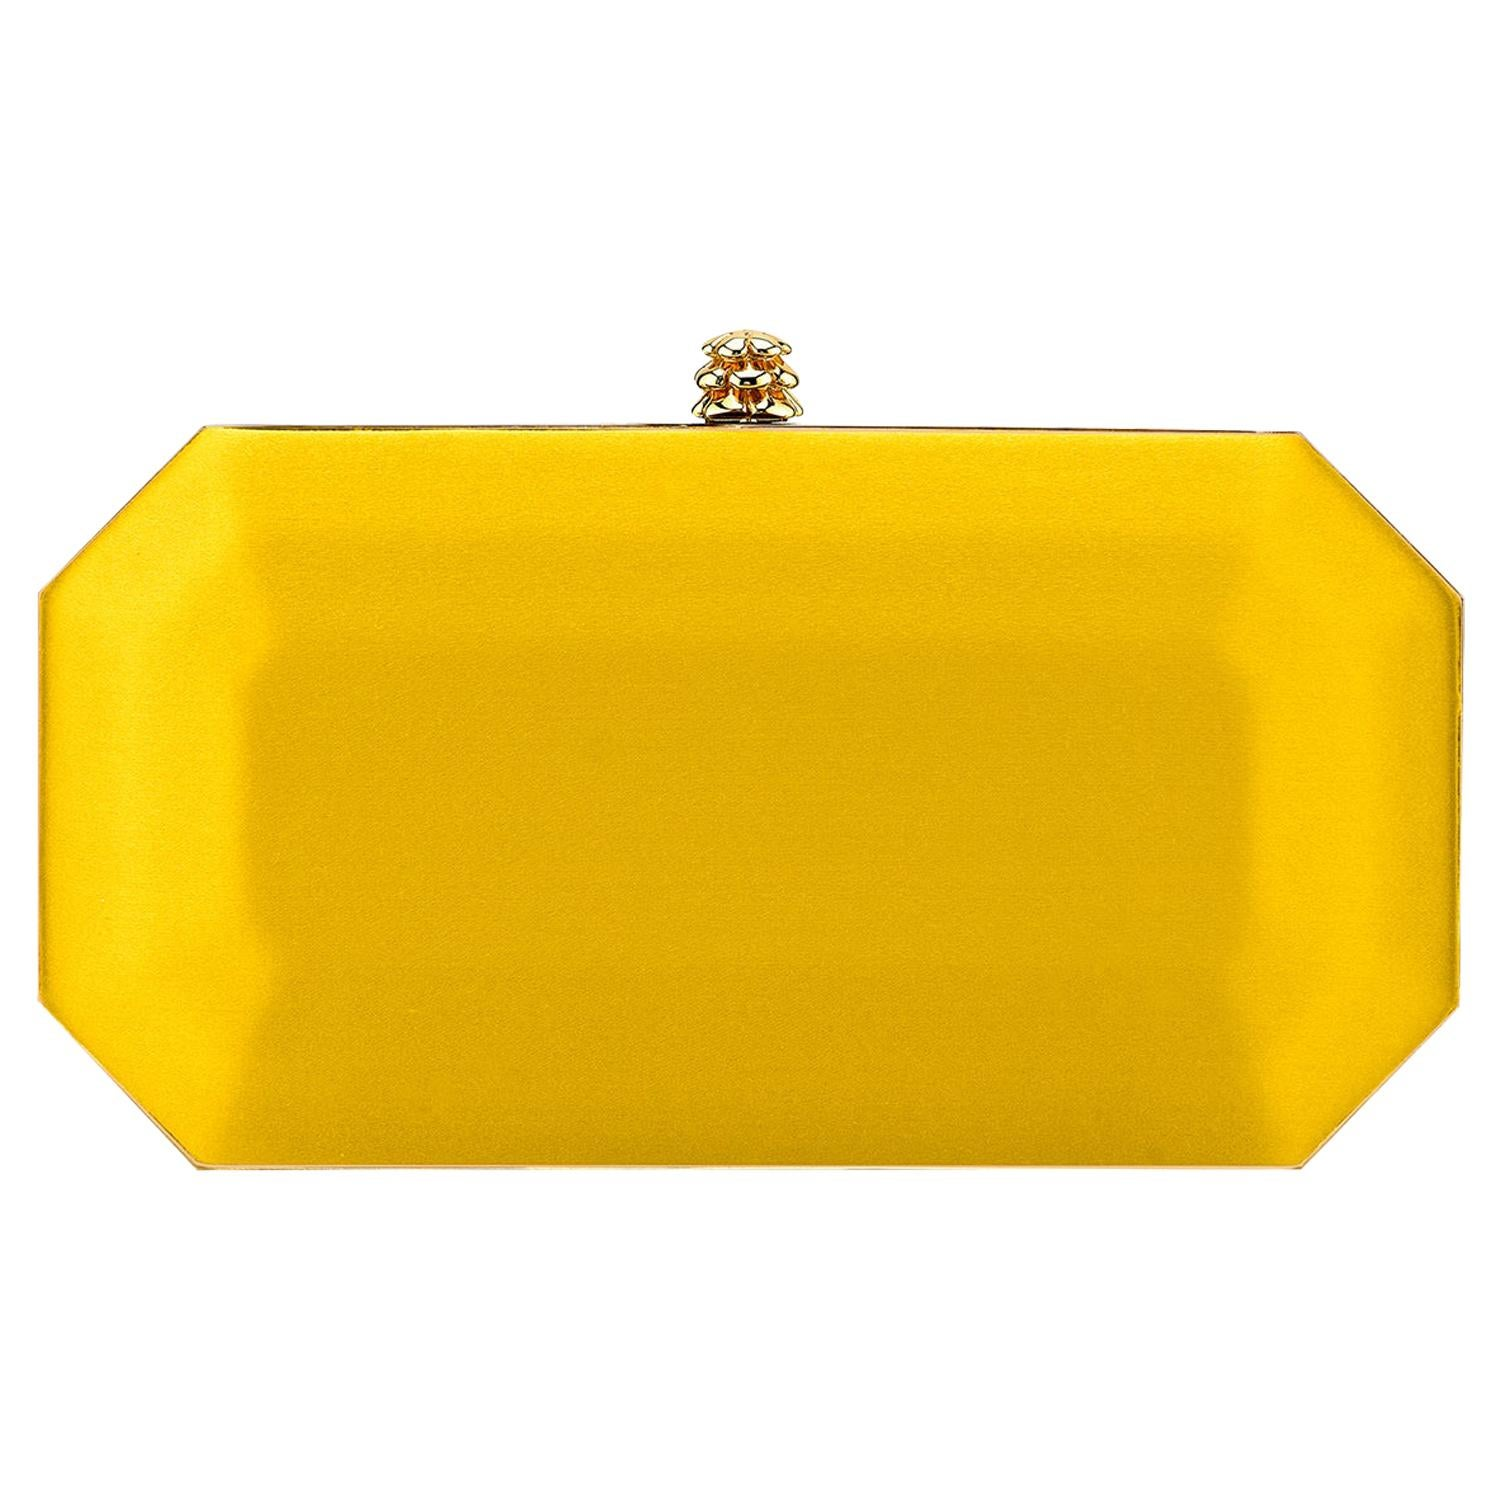 TYLER ELLIS Perry Small Clutch Golden Yellow Satin Gold Hardware